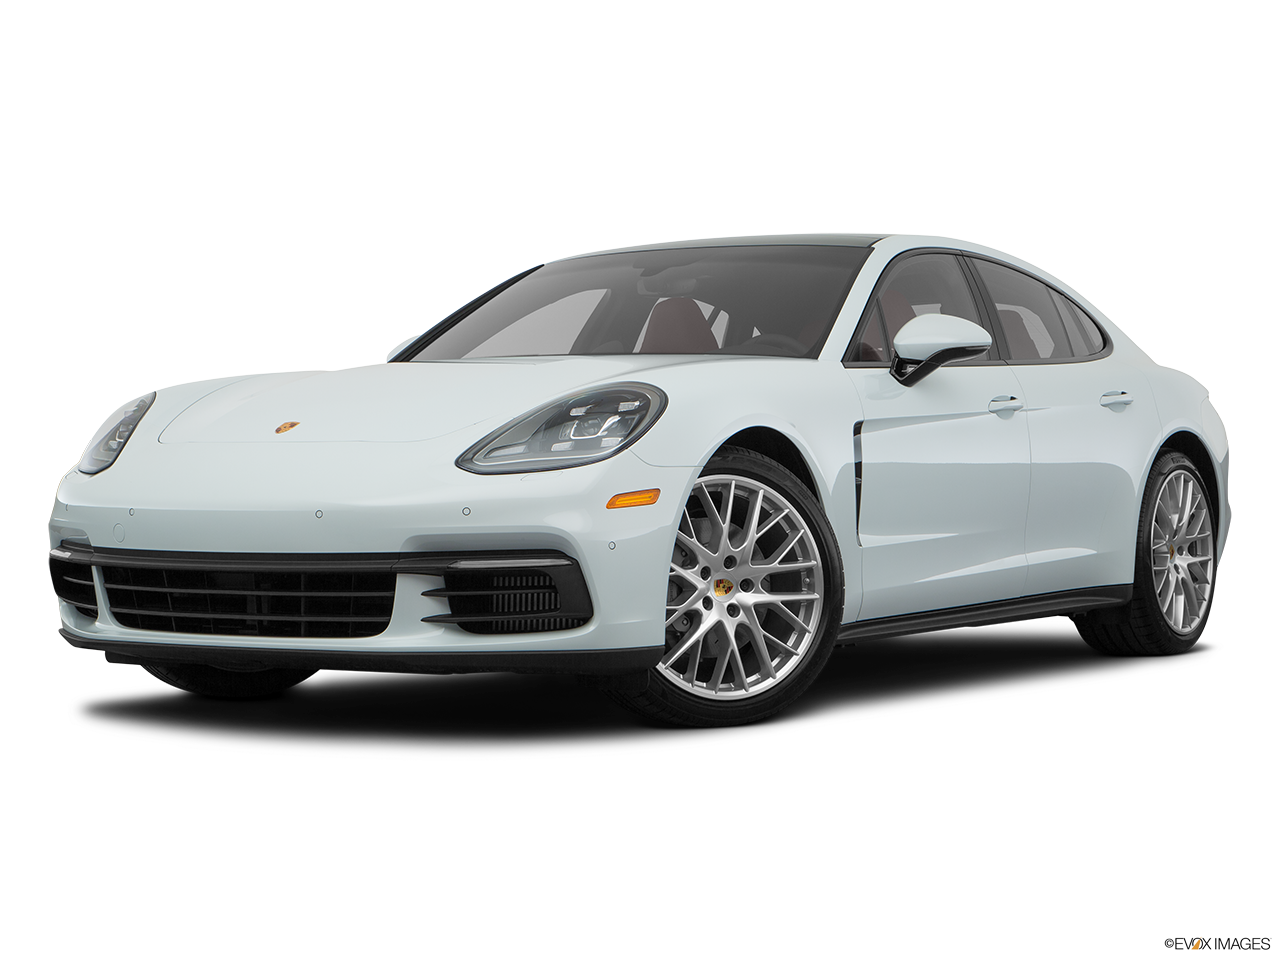 Three quart view of the Porsche Panamera Turbo S E-Hybrid